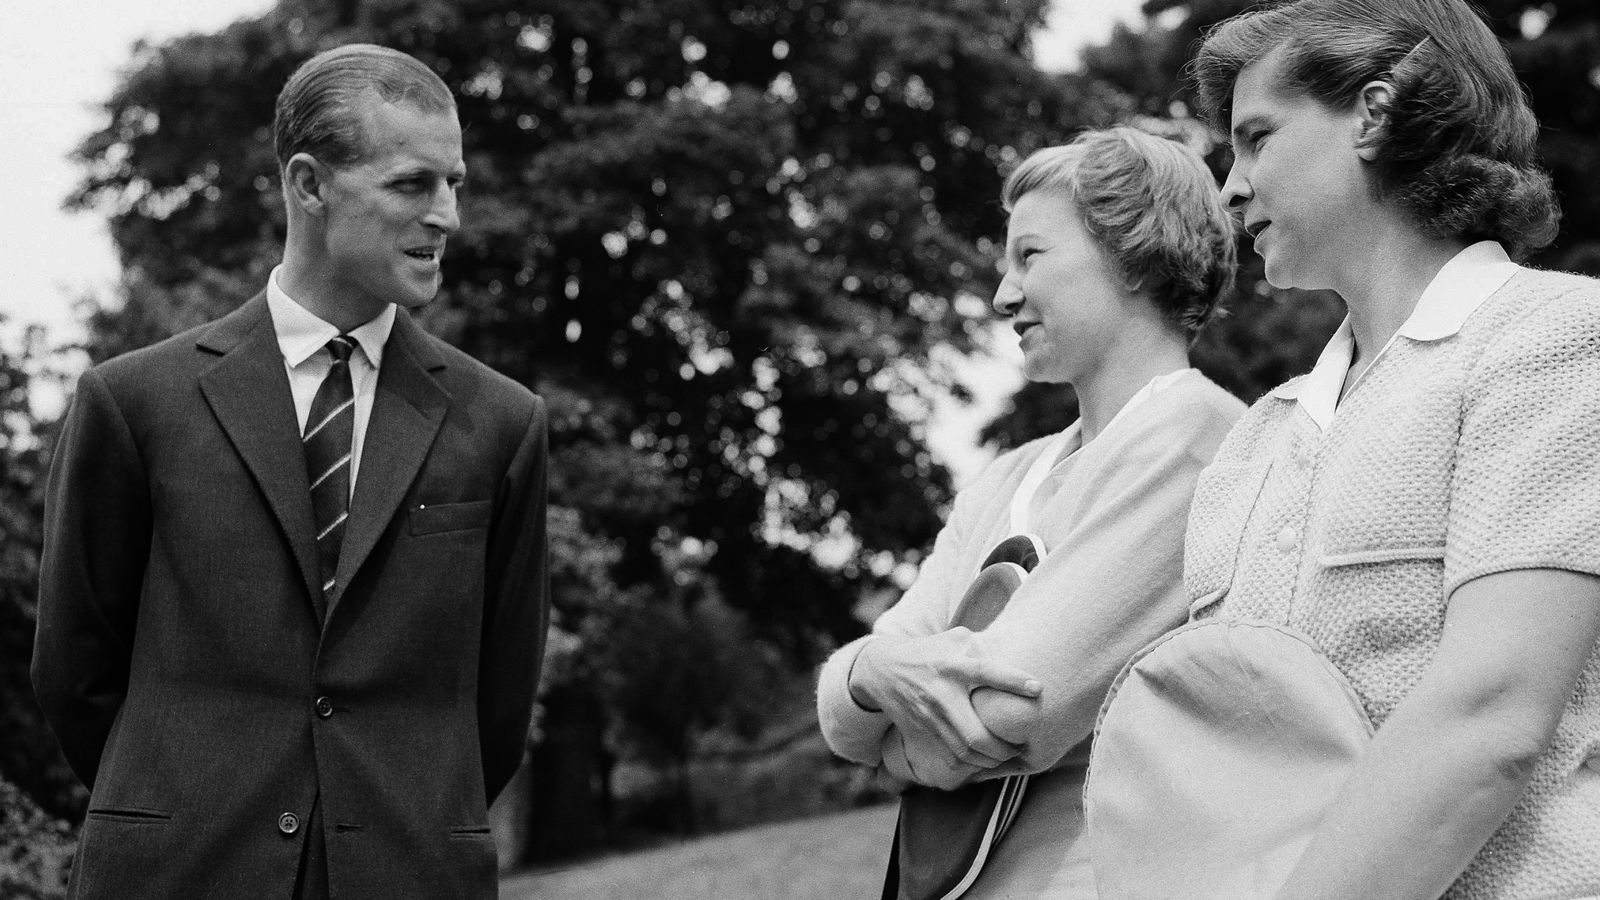 All England Lawn Tennis Club pays tribute to The Duke of Edinburgh, who has died aged 99